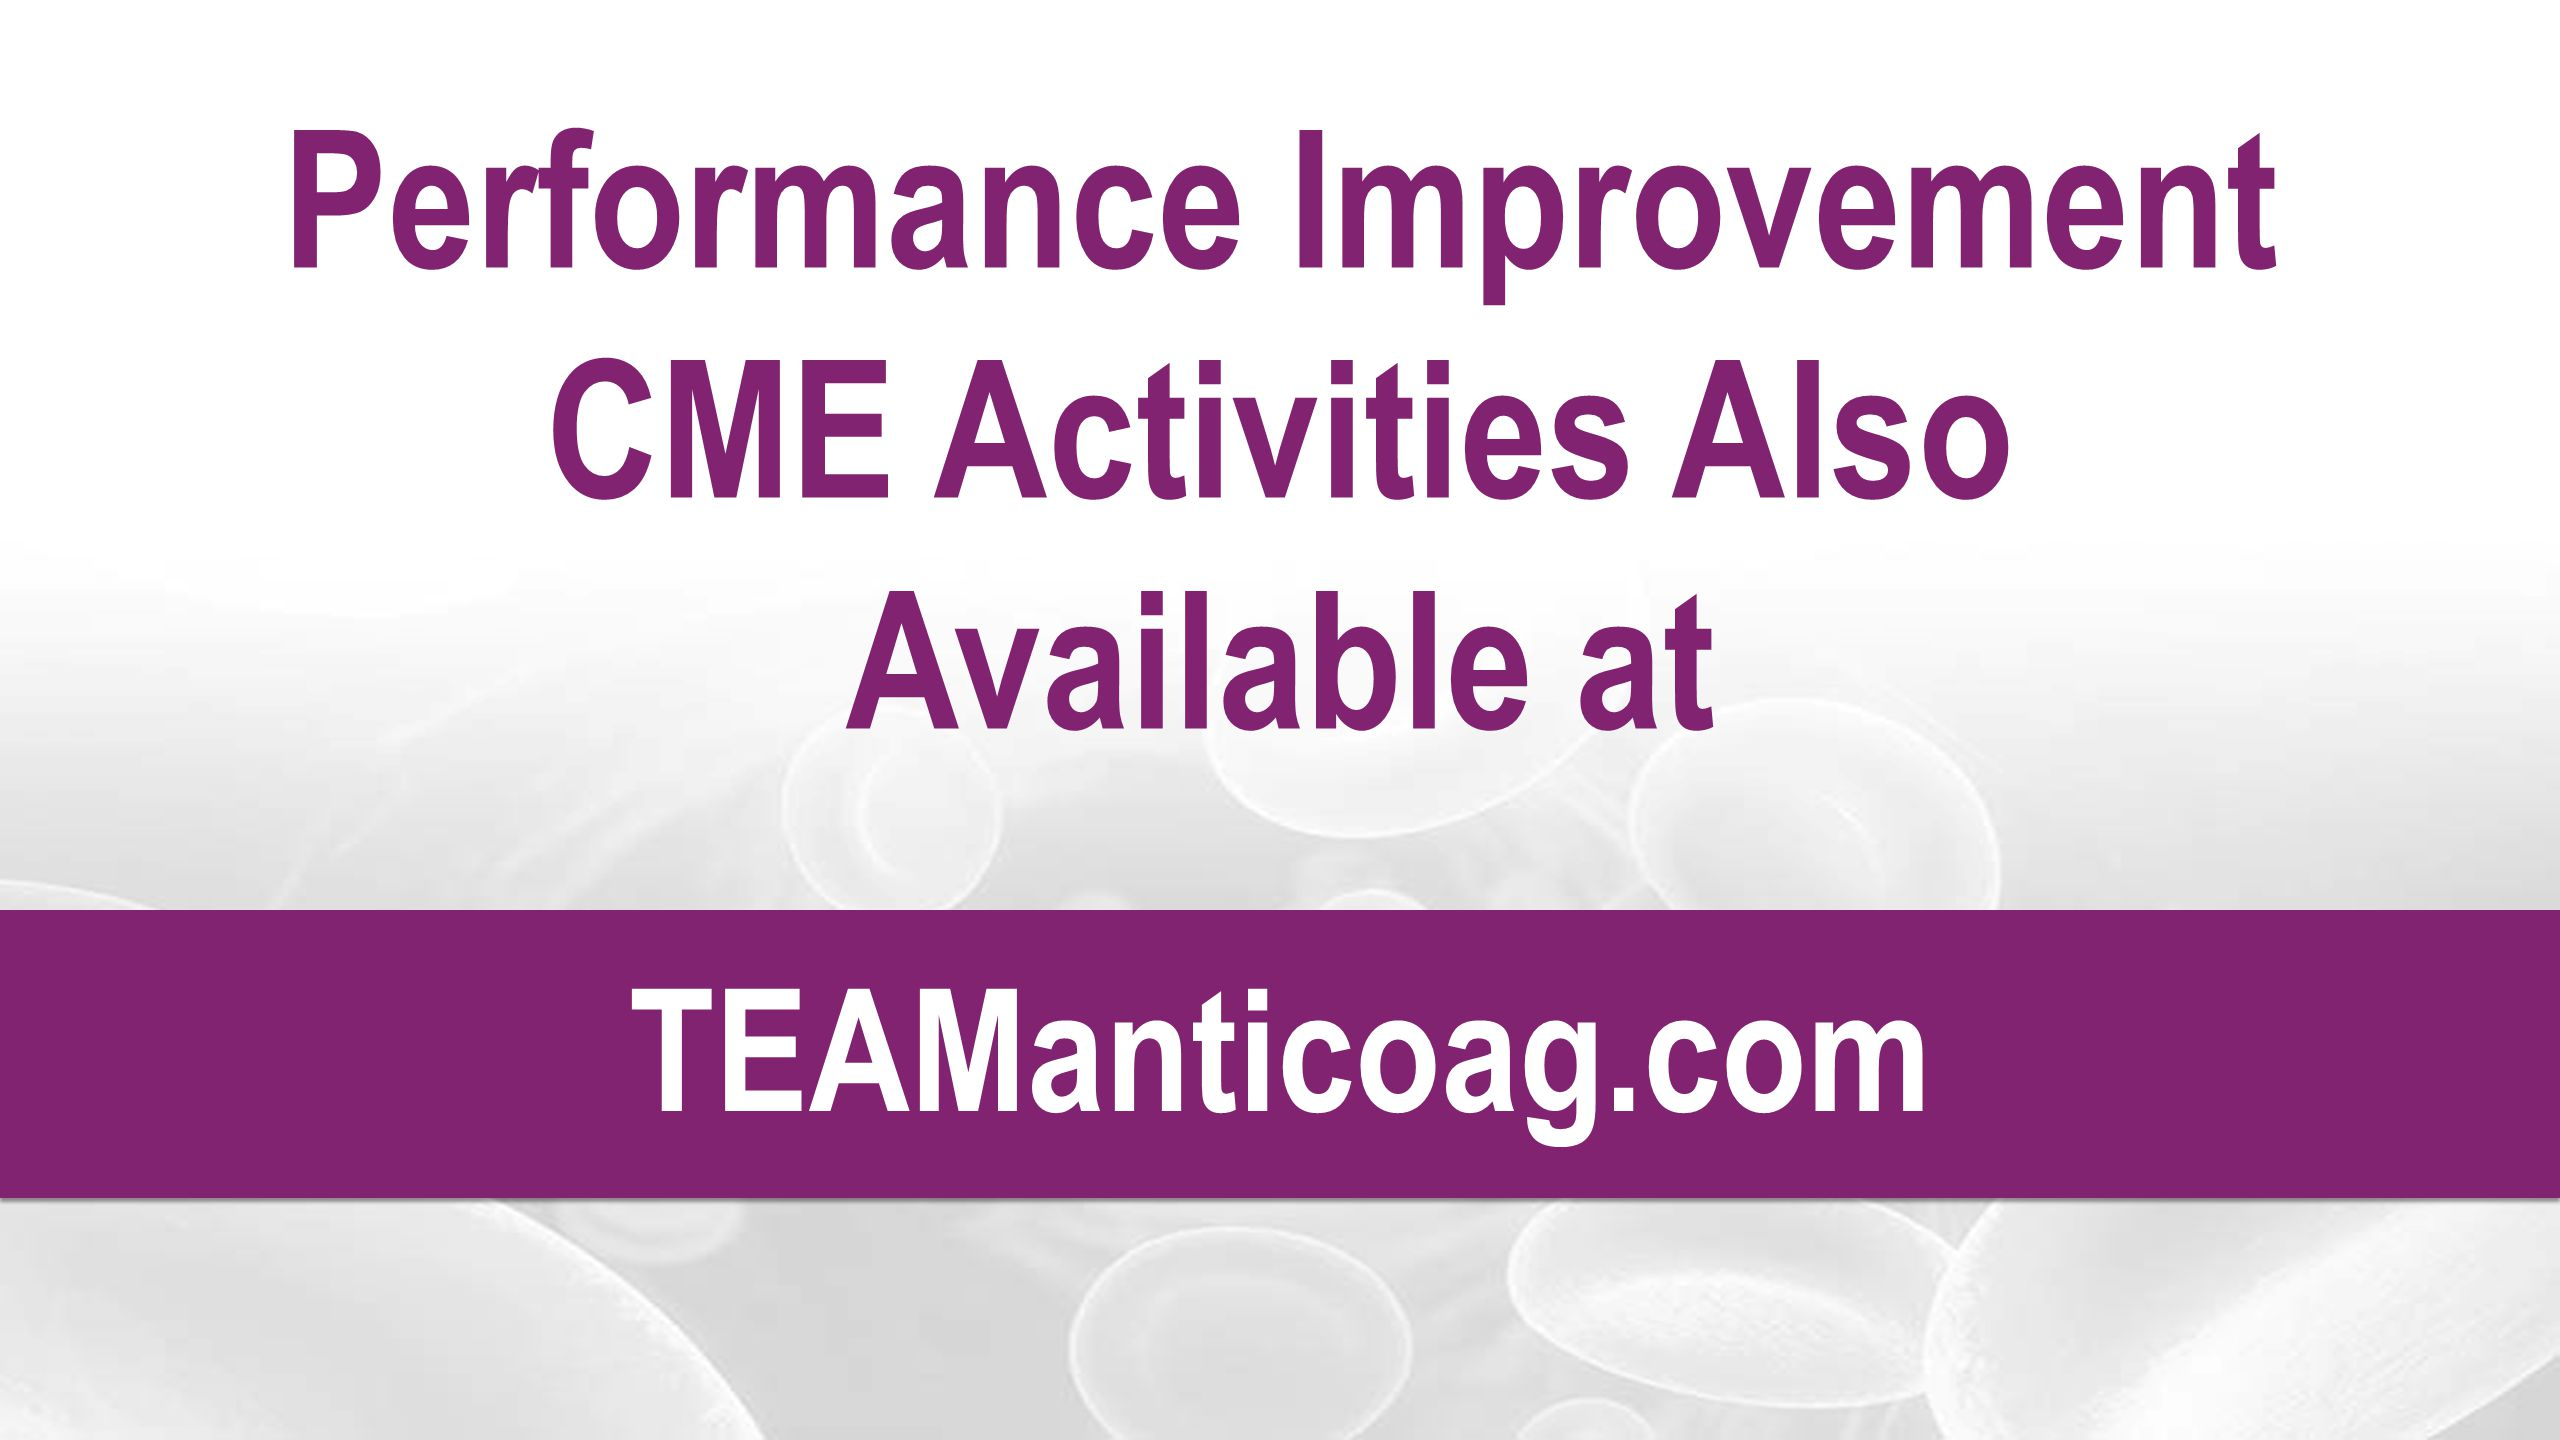 Performance Improvement CME Activities Also Available at TEAManticoag.com